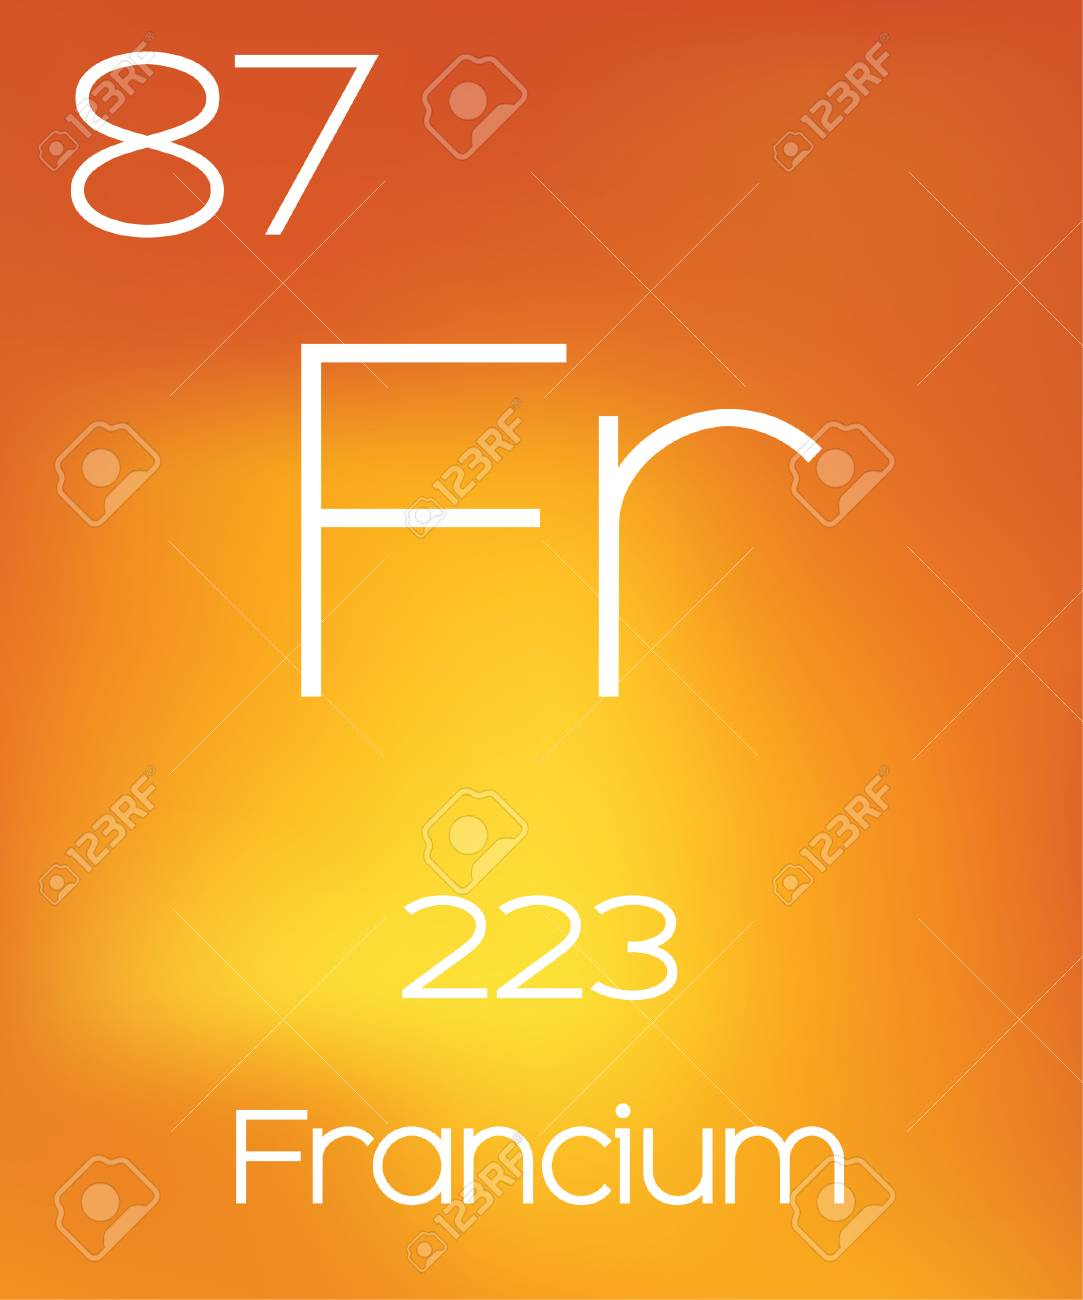 An Informative Illustration Of The Periodic Element Francium Stock